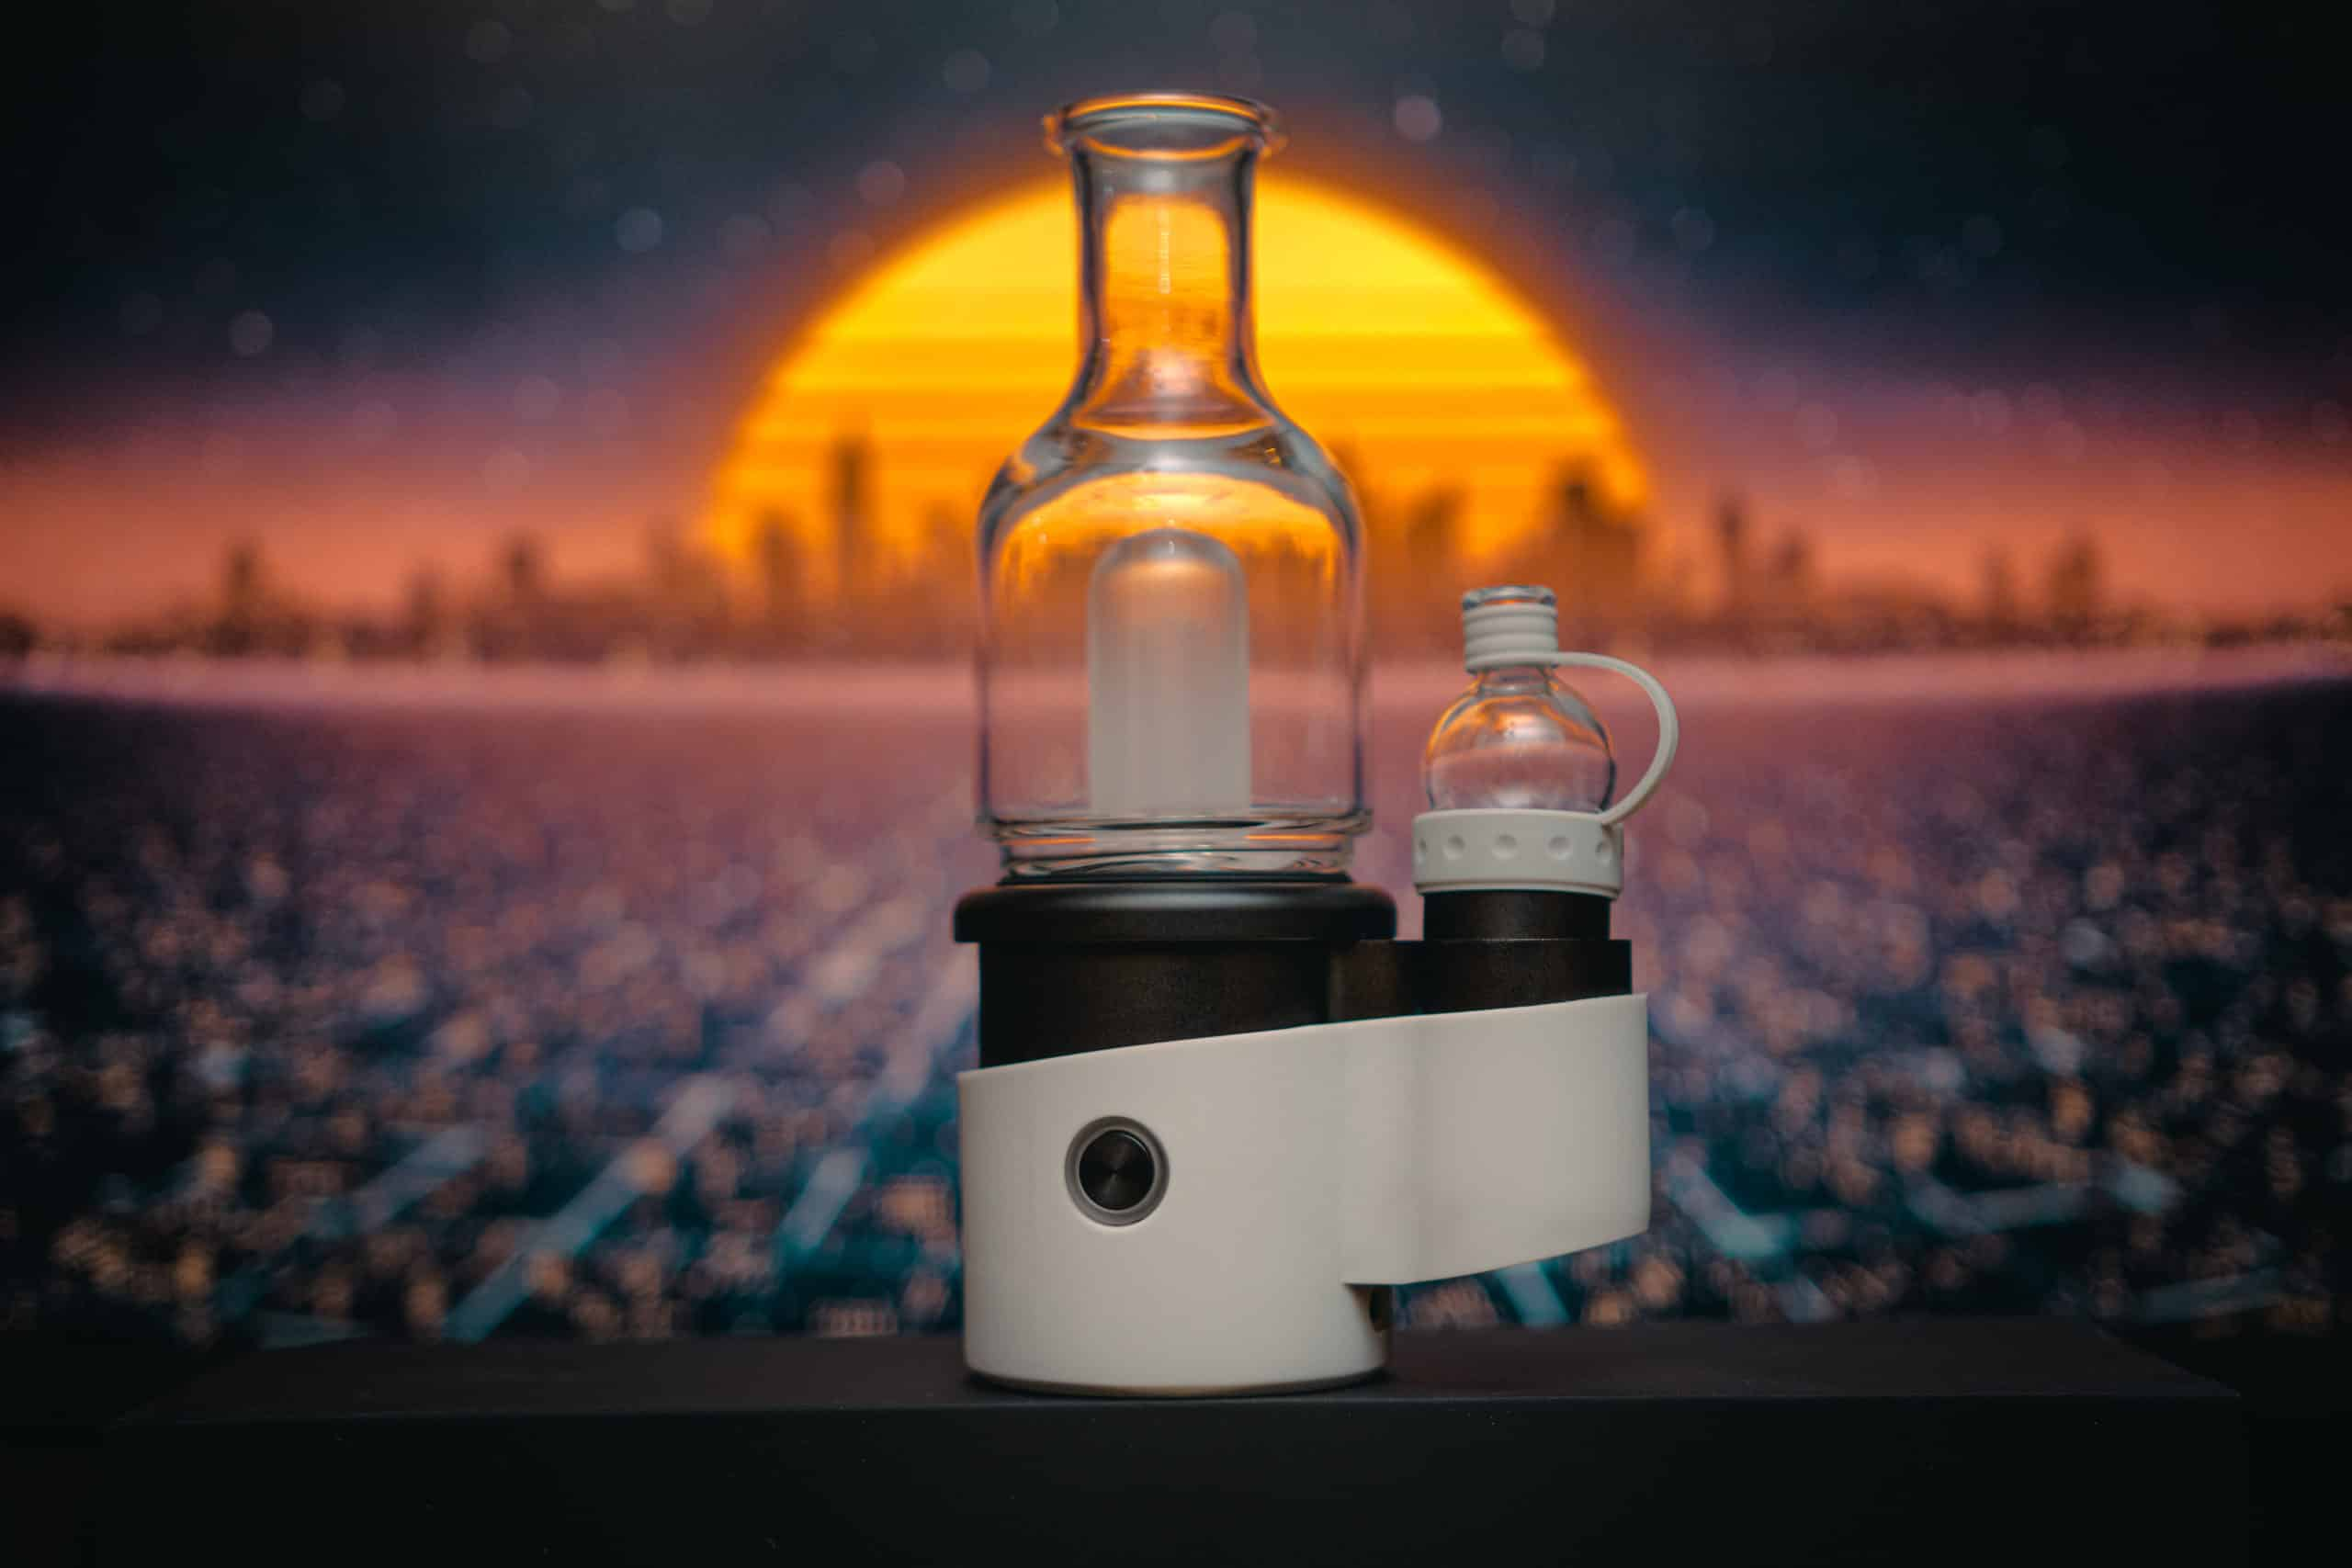 Core E-Rig Electric Dab Vaporizer